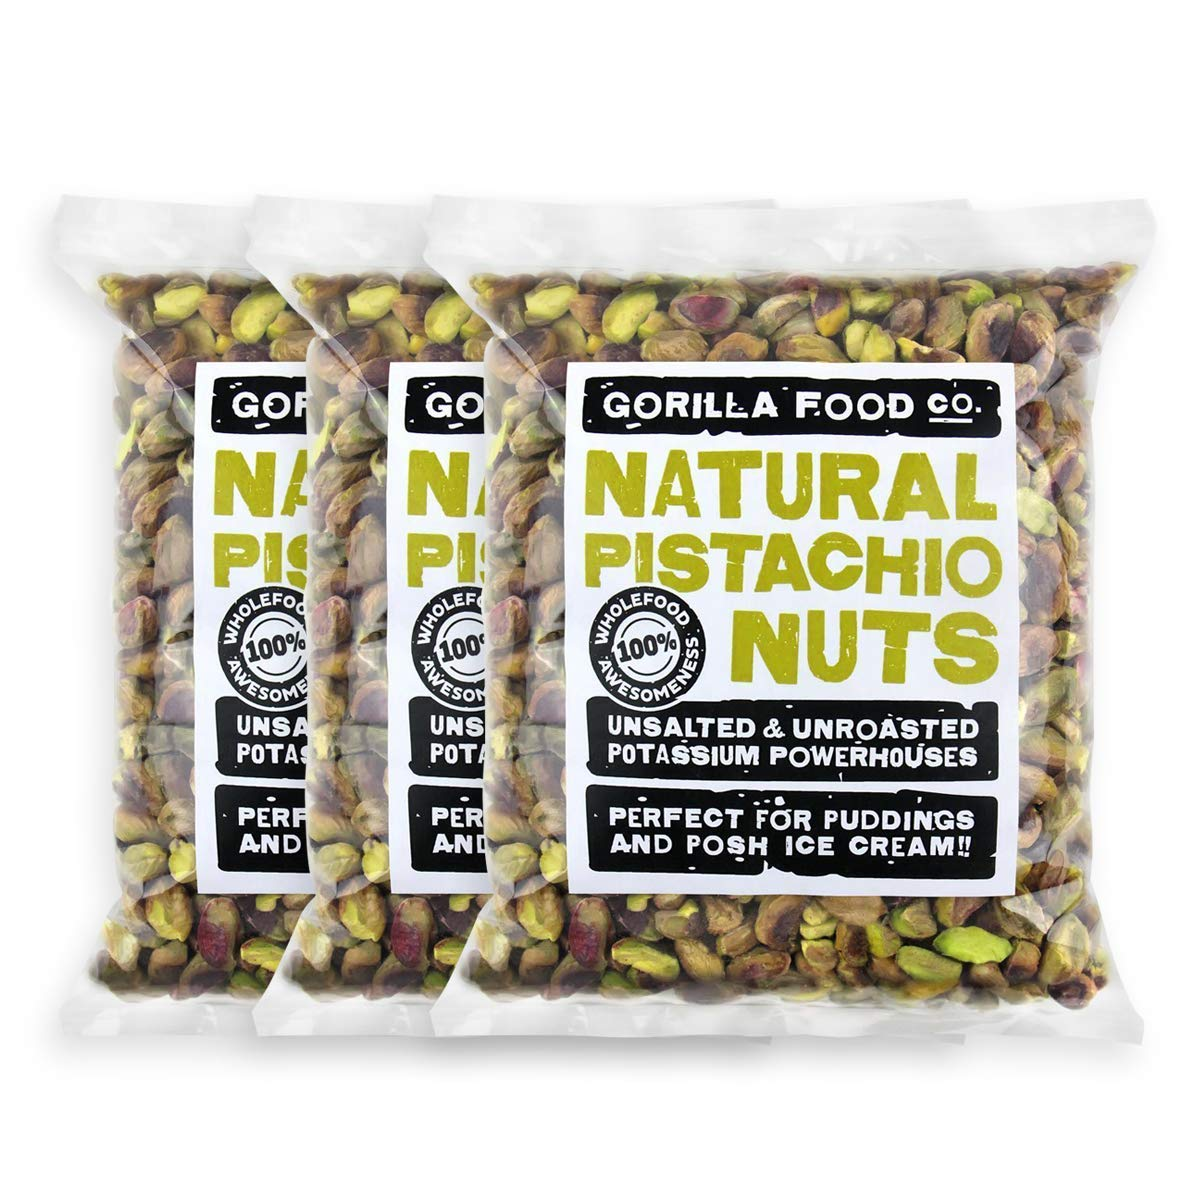 California Pistachios Max 47% OFF Shelled Raw Kernels - security Unsalted 3-Pack 8oz